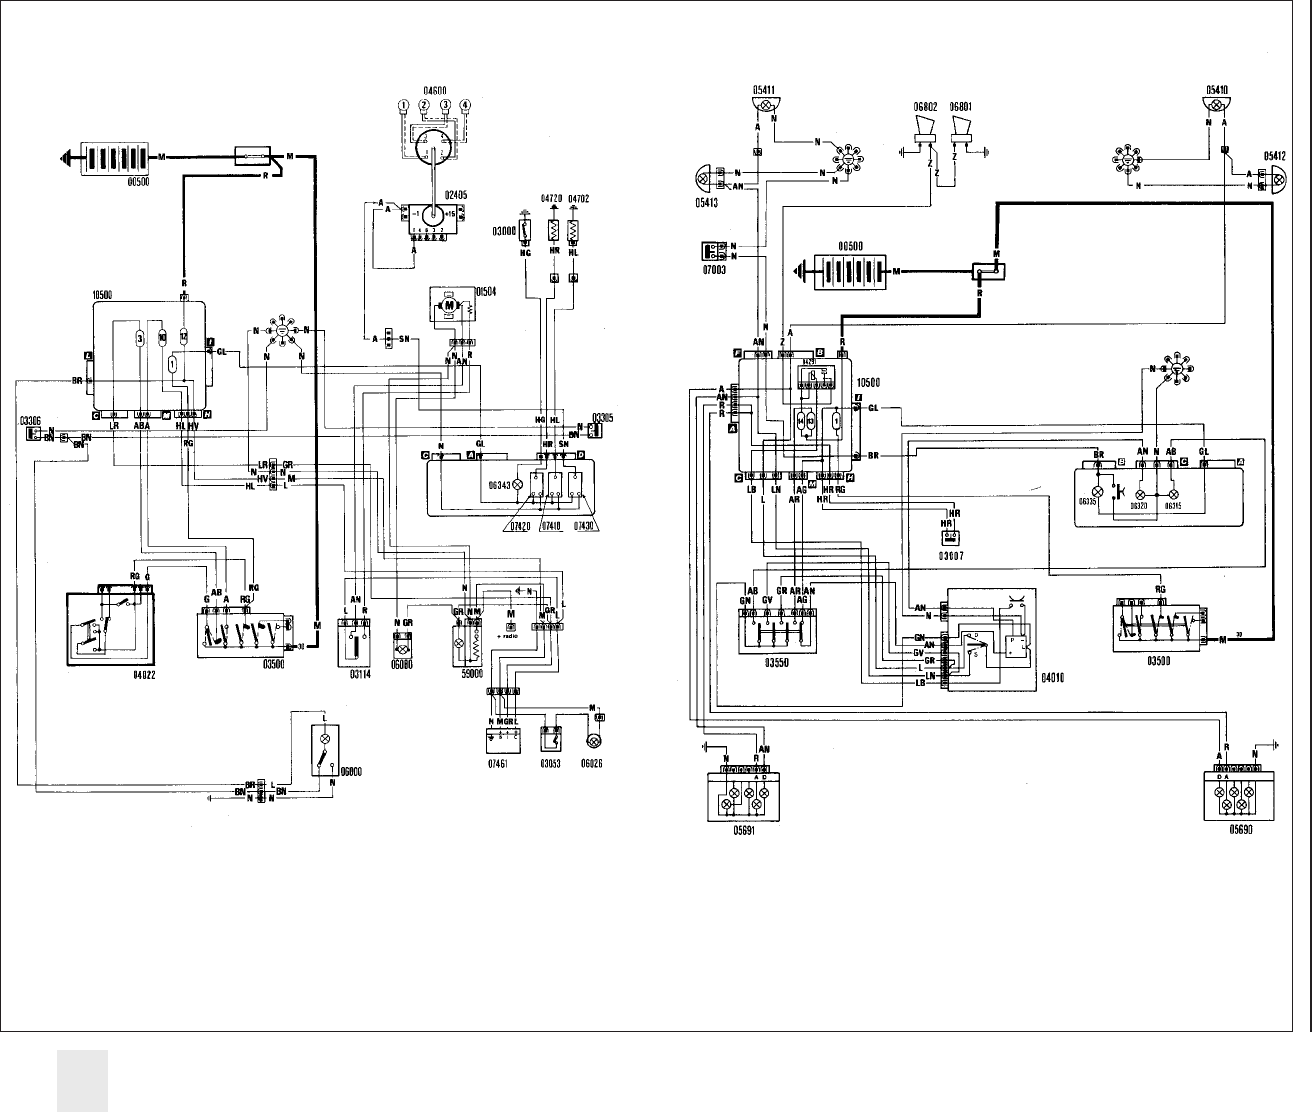 Fiat doblo wiring diagrams diagram schemes